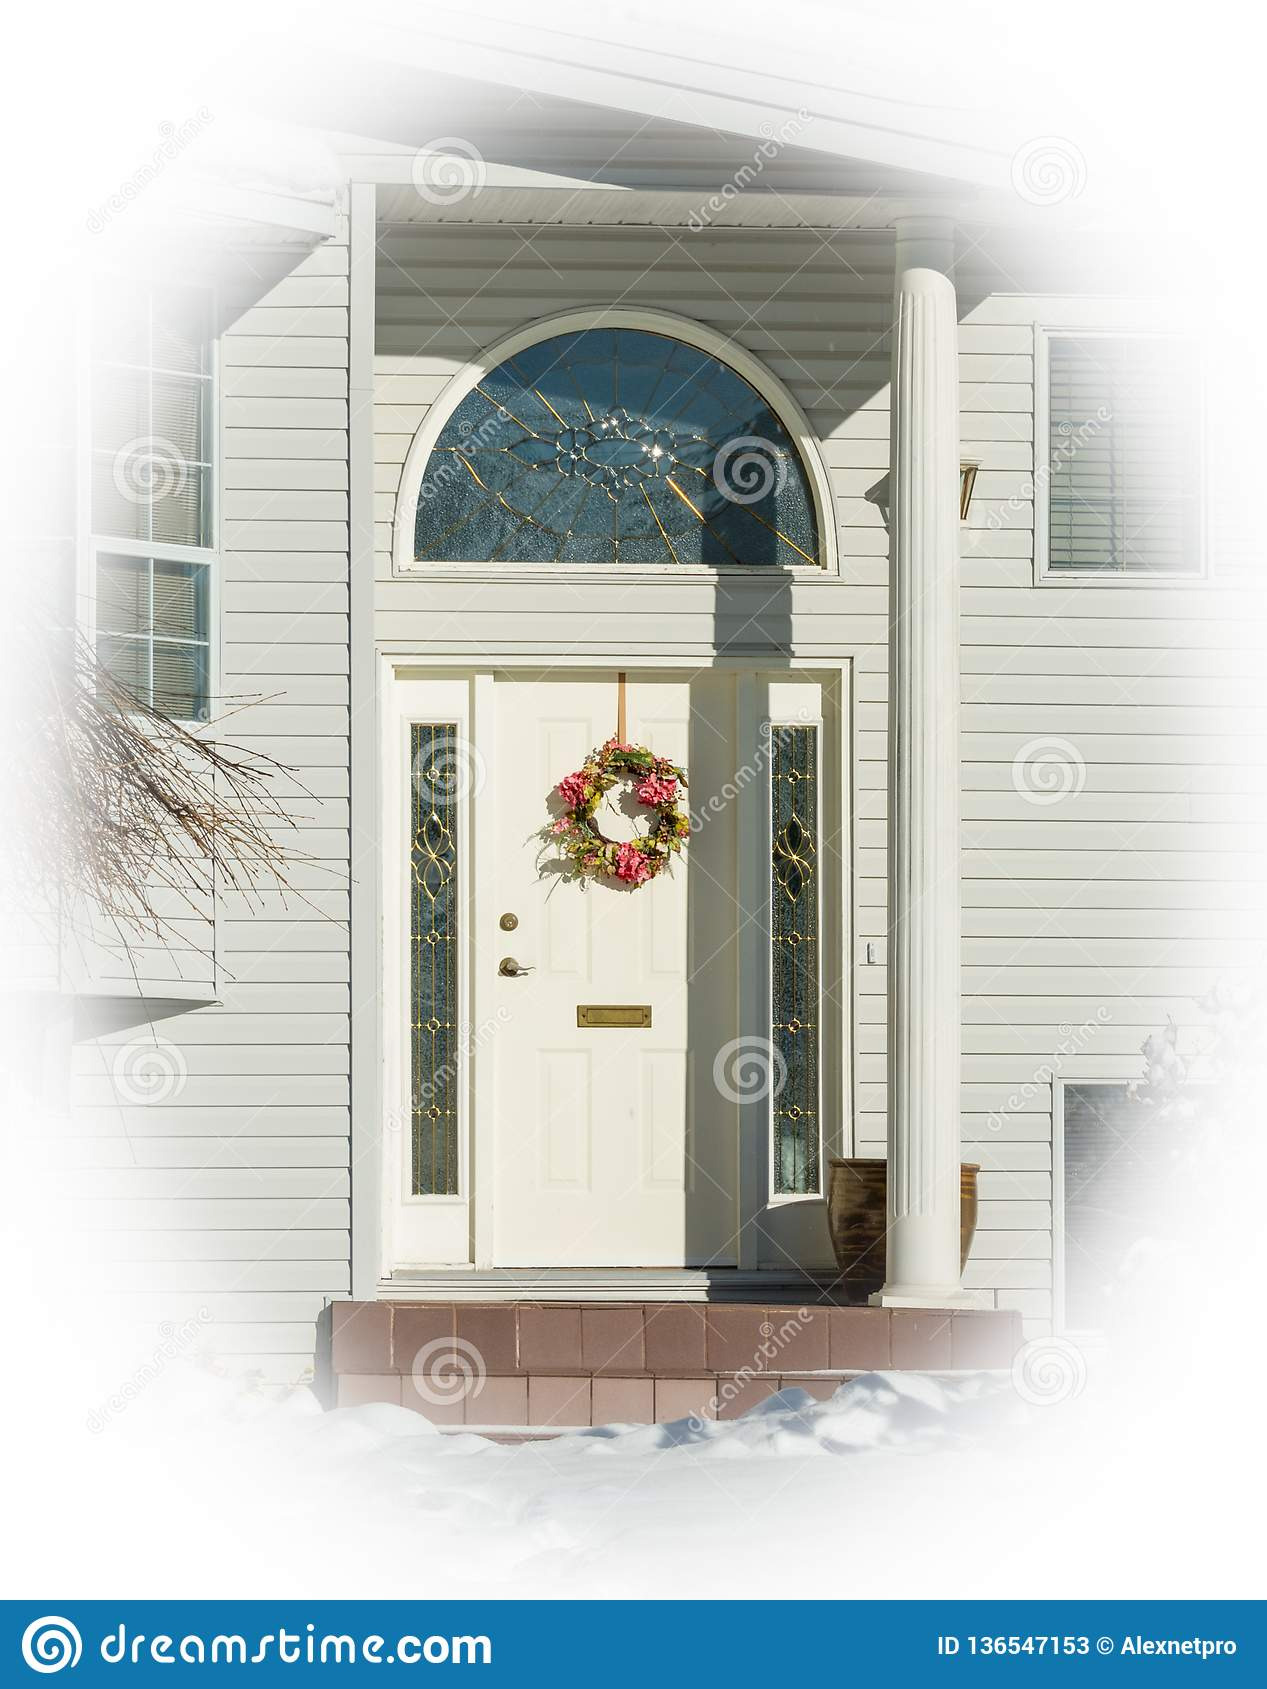 entrance typical american house winter snow covered house entrance typical american house winter entrance average